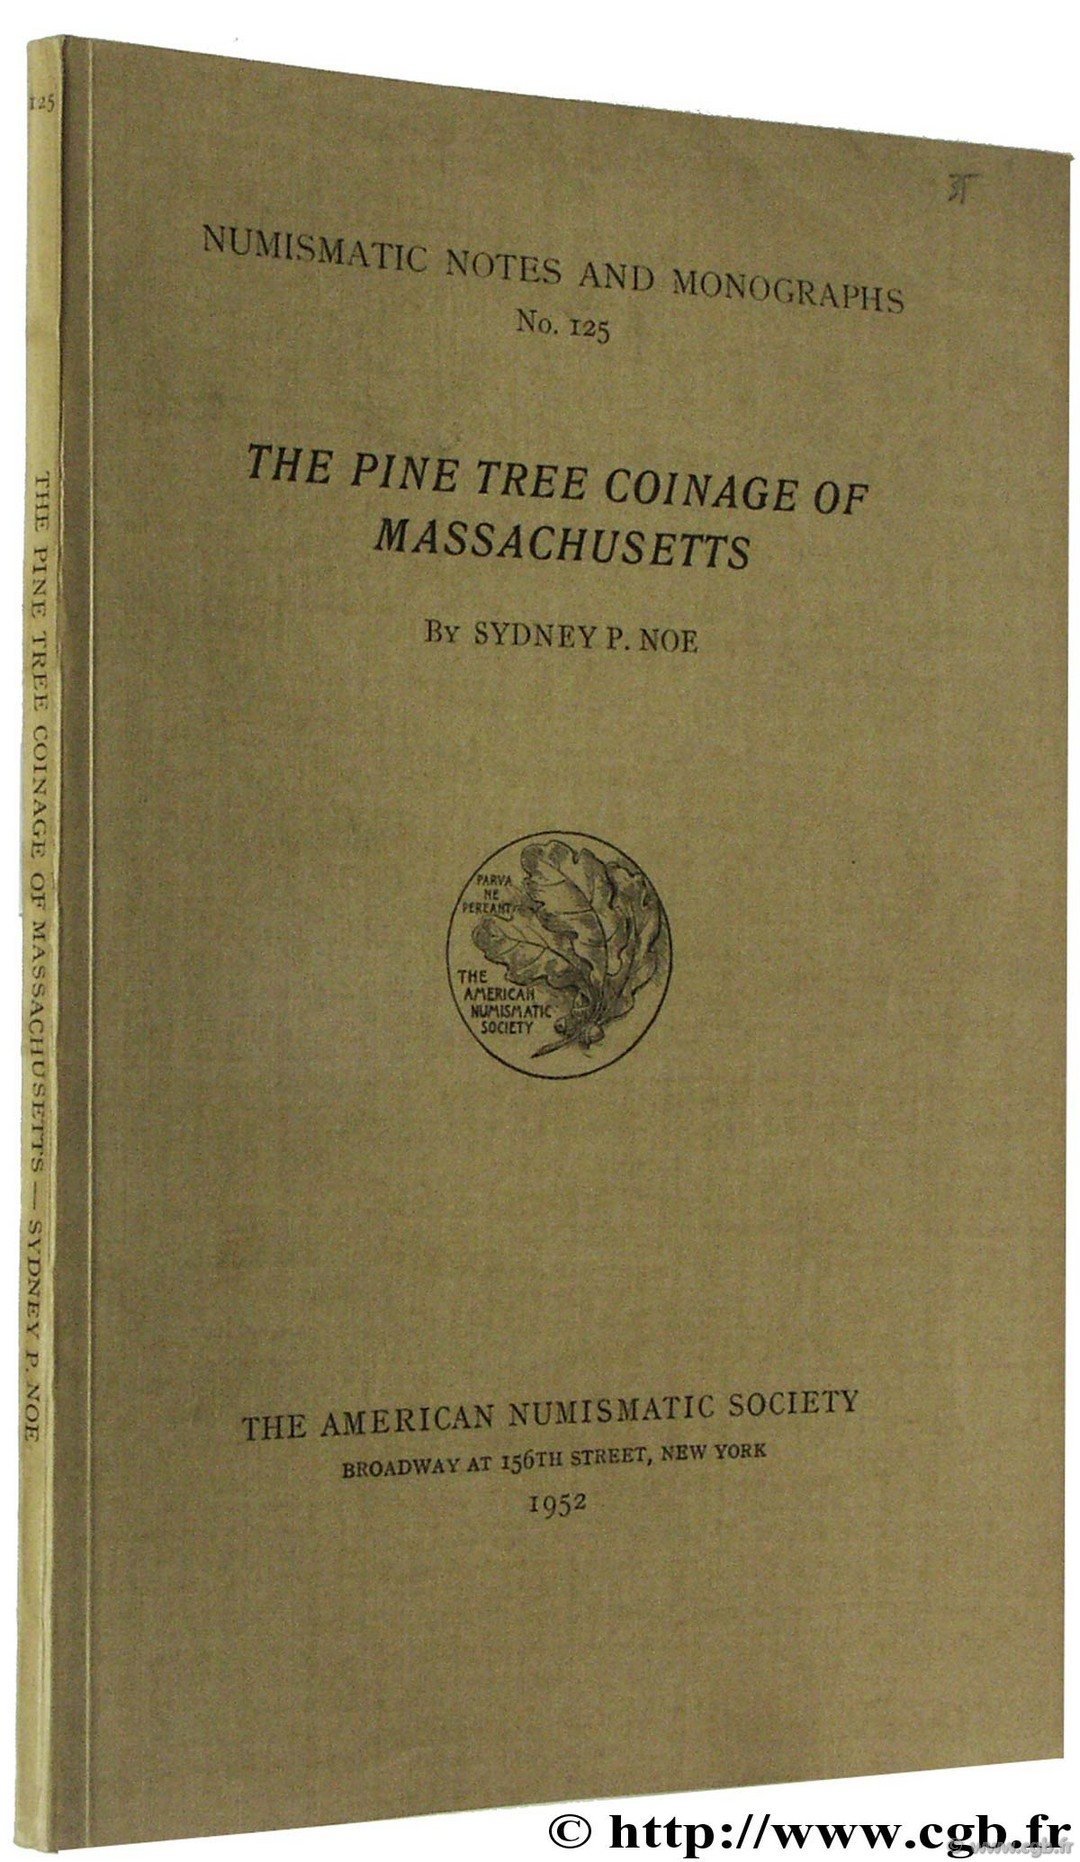 The Pine tree Coinage of Massachusetts, NNM n° 125 NOE S.